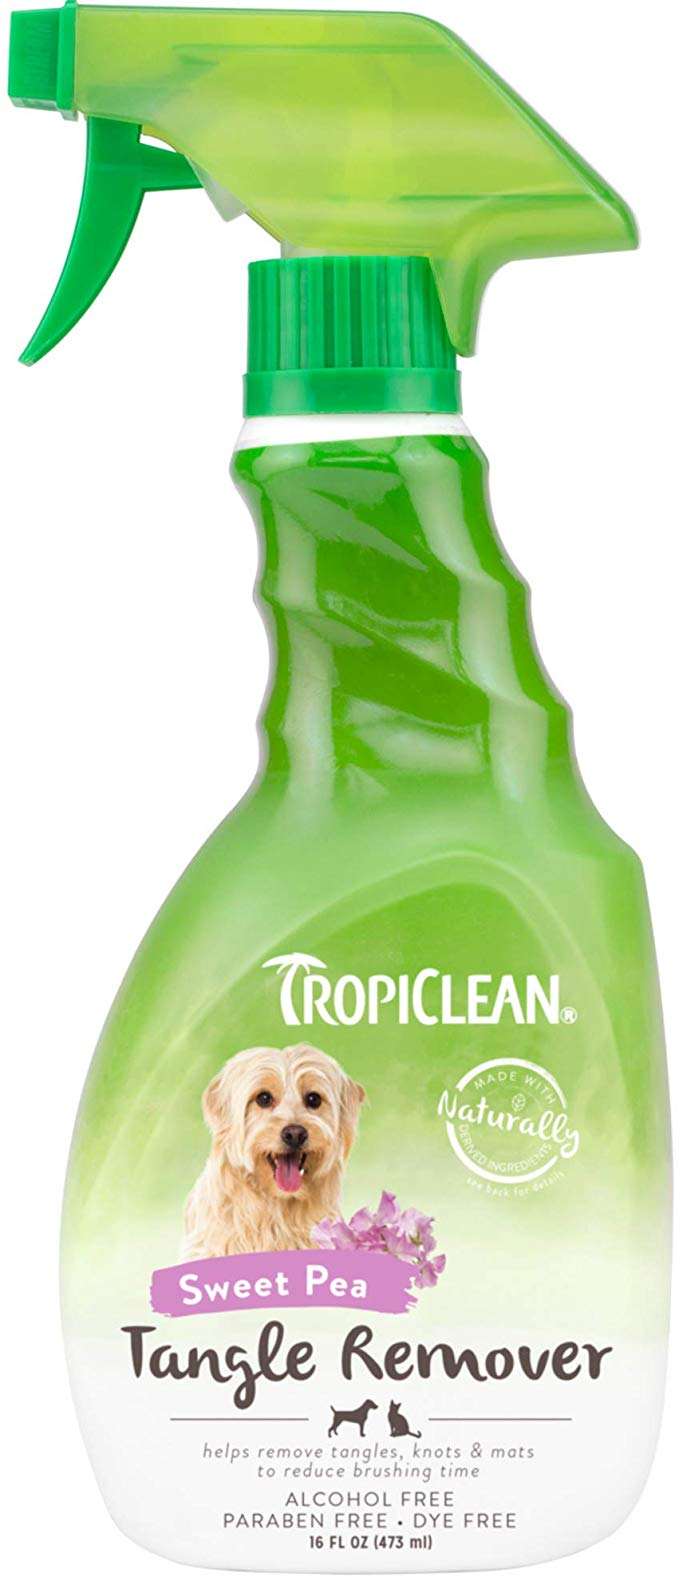 Tropiclean Detangler Amazon Com Tropiclean Tangle Remover 16oz In 2020 Pet Grooming Tools Grooming Tools Paraben Free Products